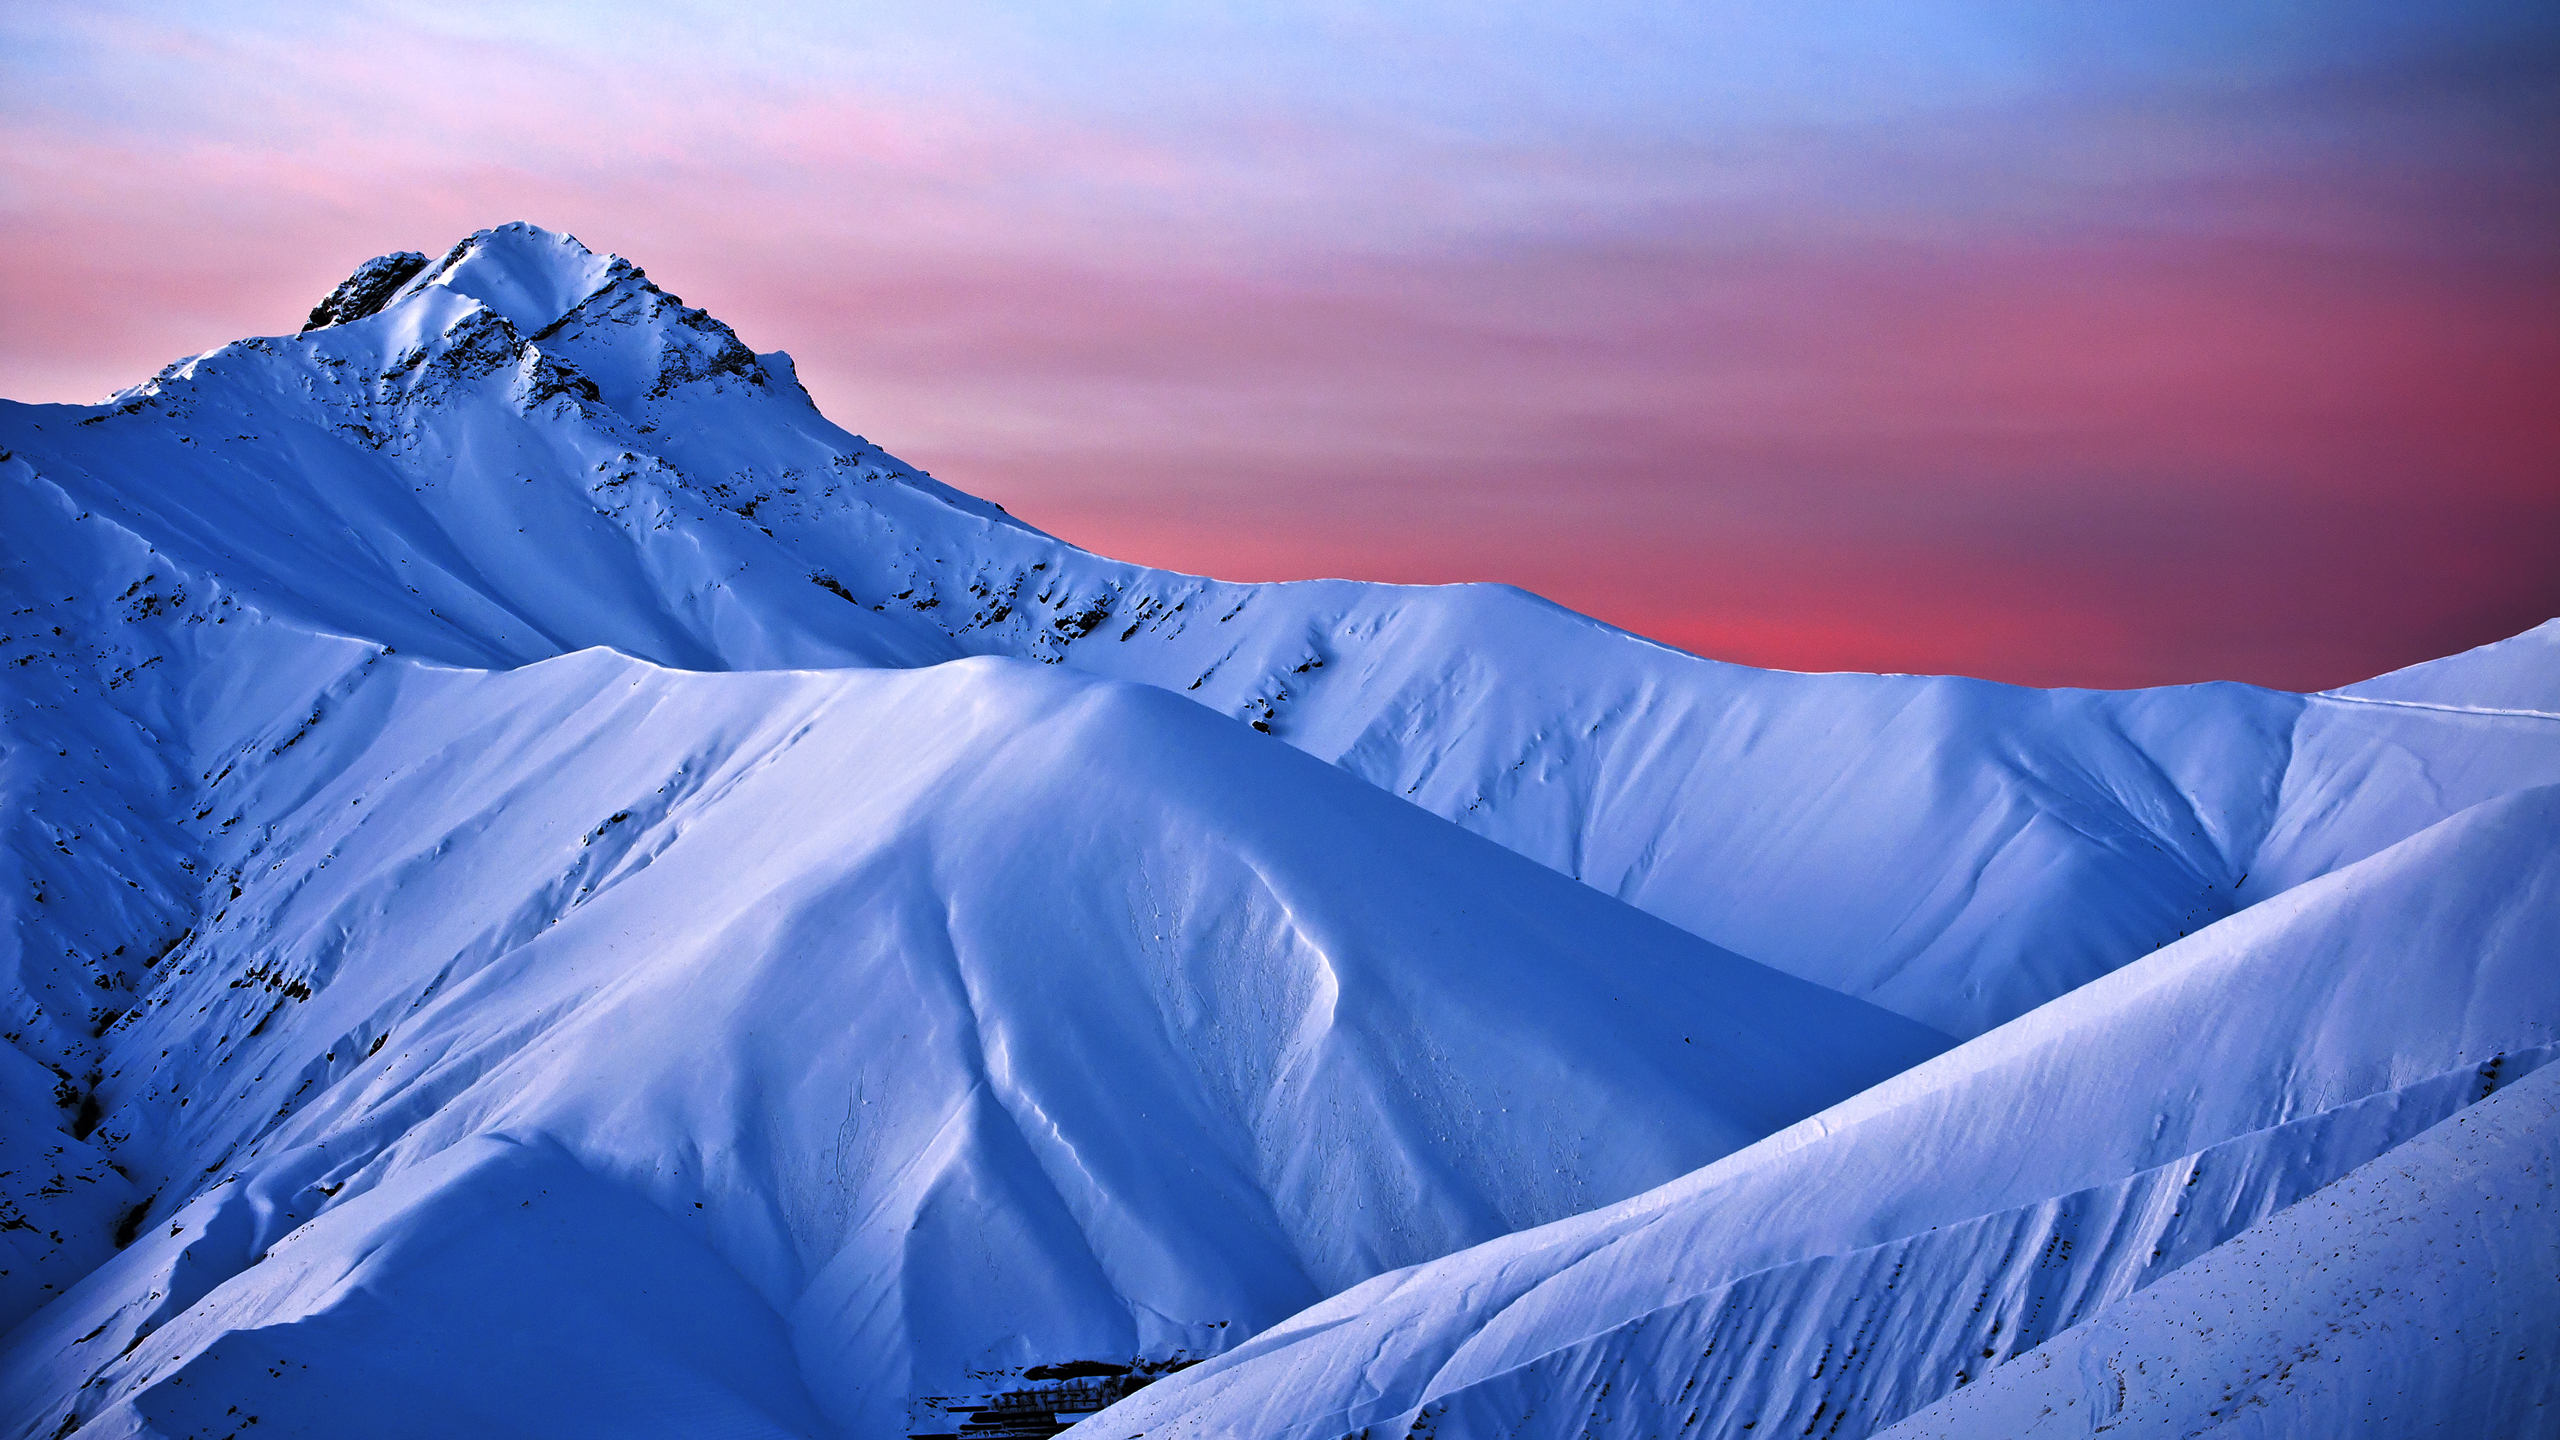 Dawn in the snowy mountains